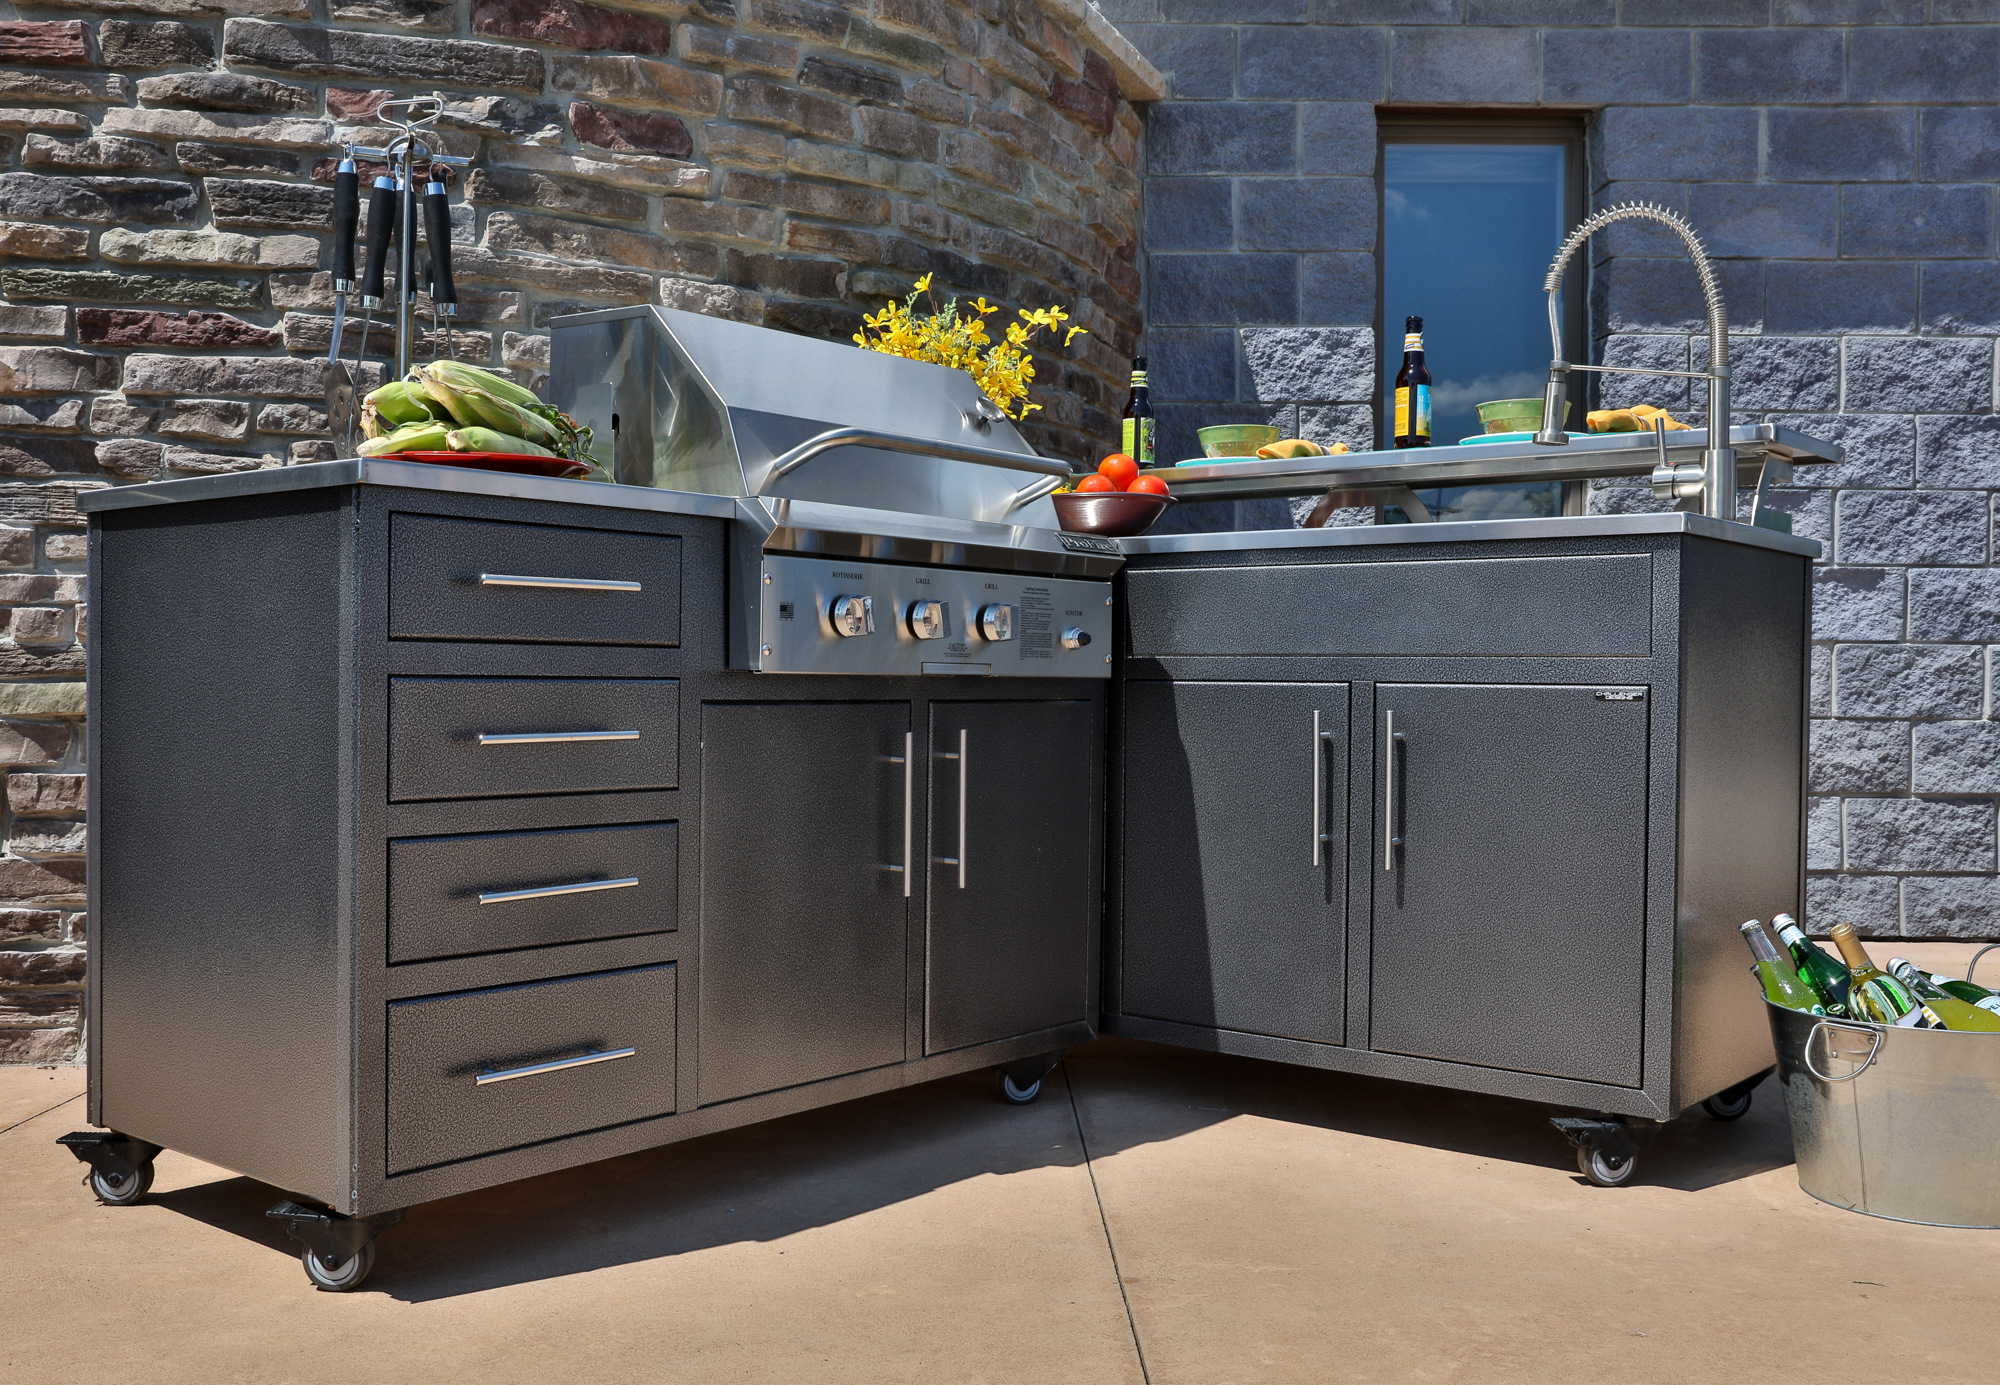 Outdoor Modular Kitchen